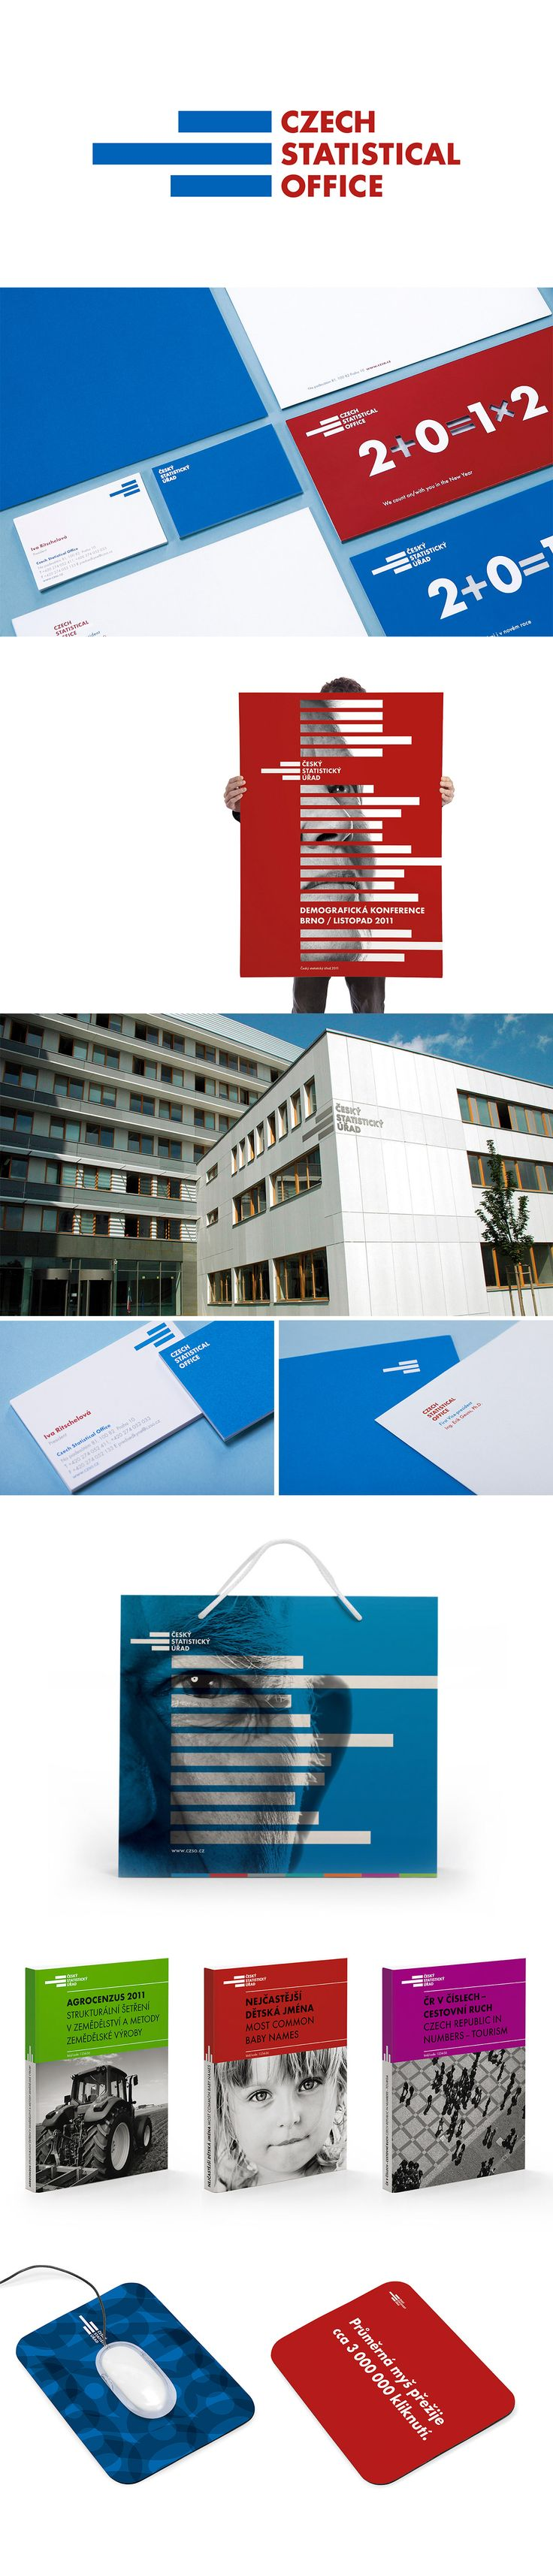 Czech Statistical Office Corporate Identity | Designed by Jiri Toman | Toman Design